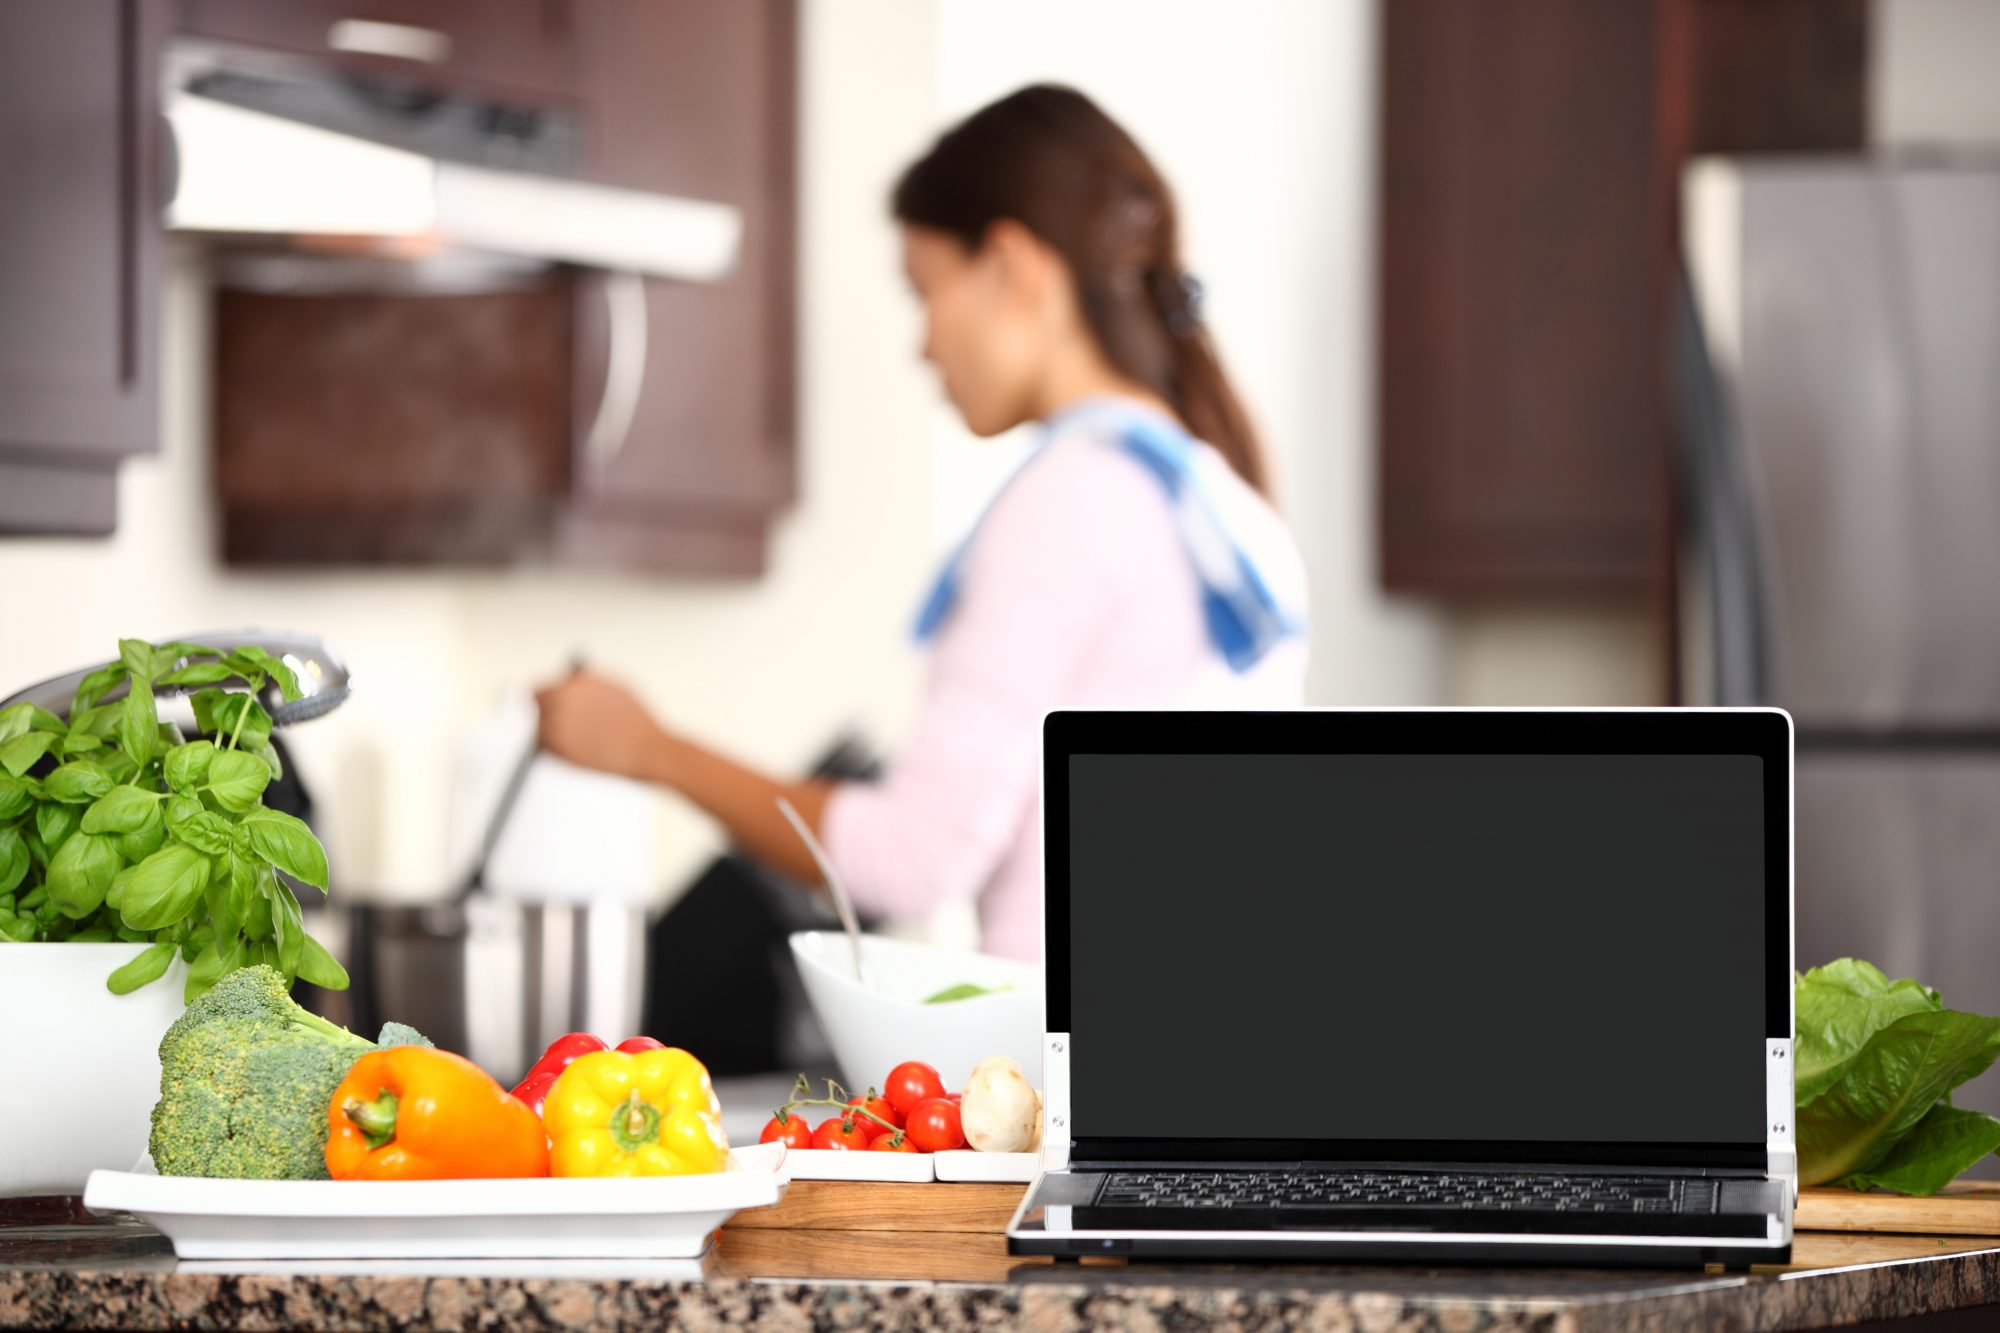 How to Avoid Ruining Your (Super Expensive) Laptop While Cooking